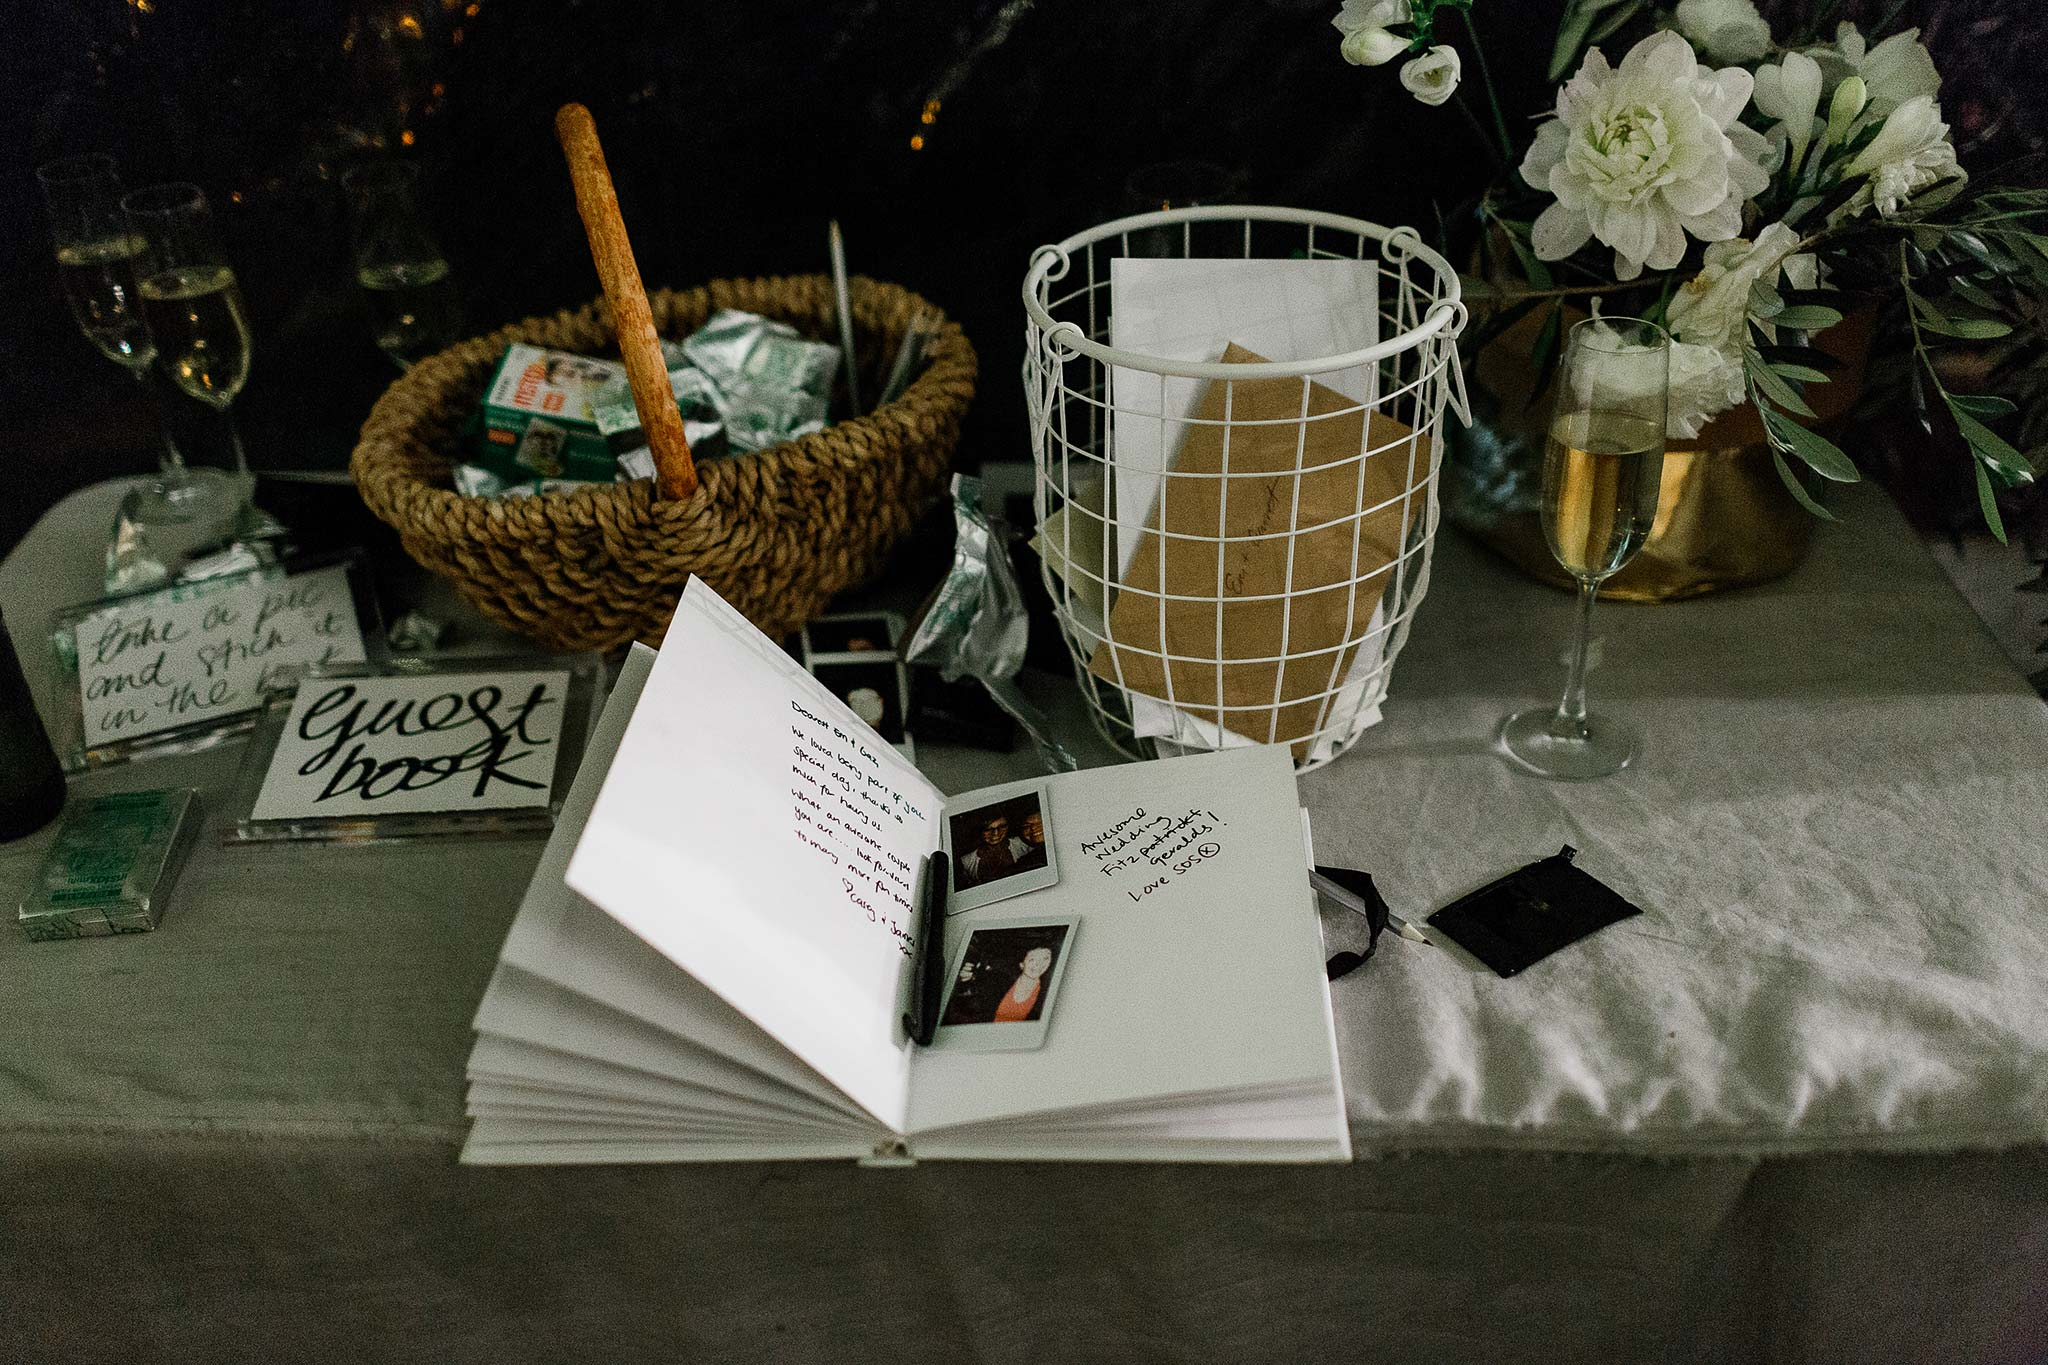 Tasmania-Davenport-Farm-Wedding-guest-book